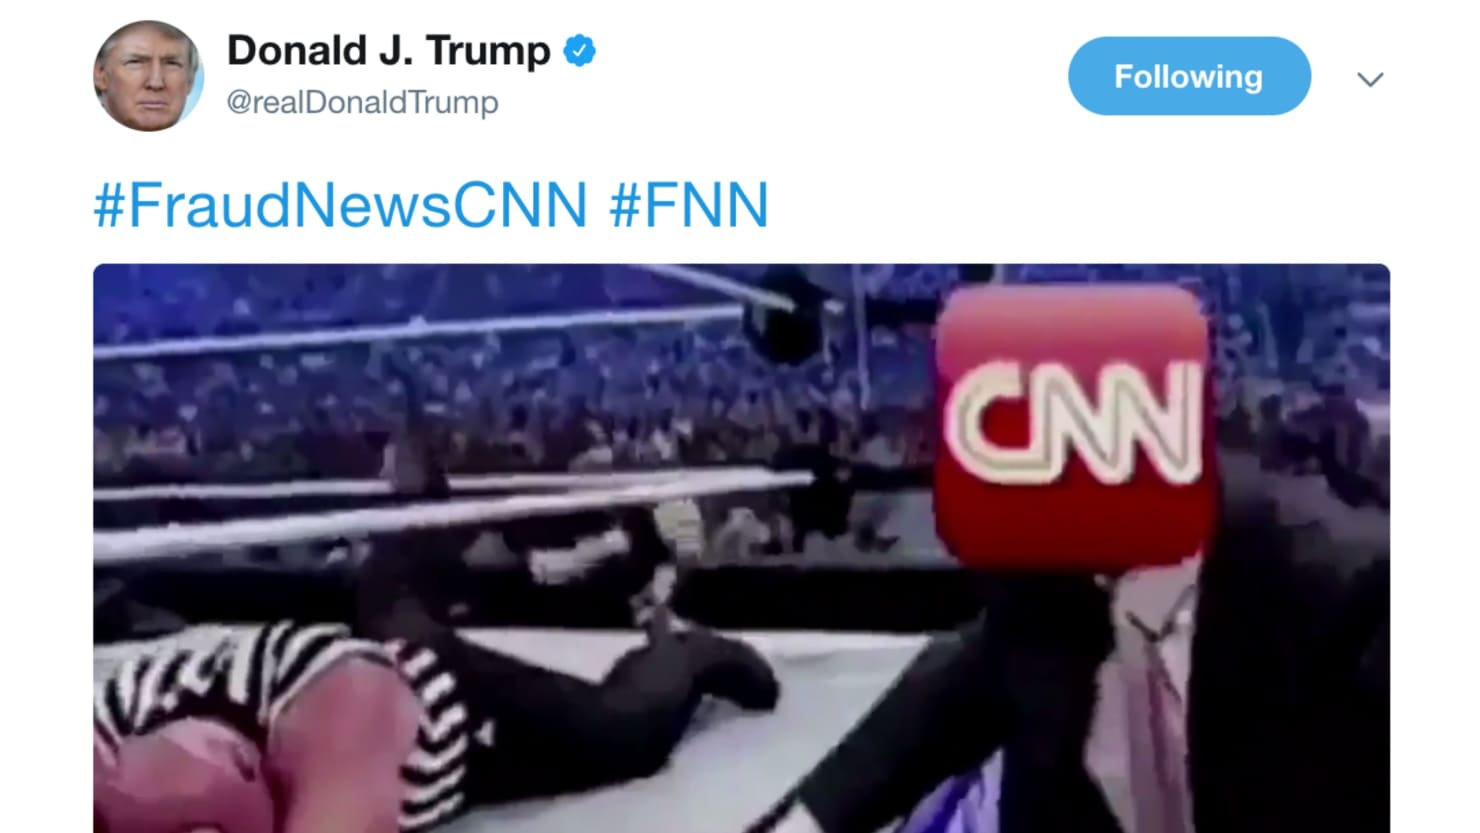 Cnn World News Twitter: Trump Tweets Video Of Him Punching CNN